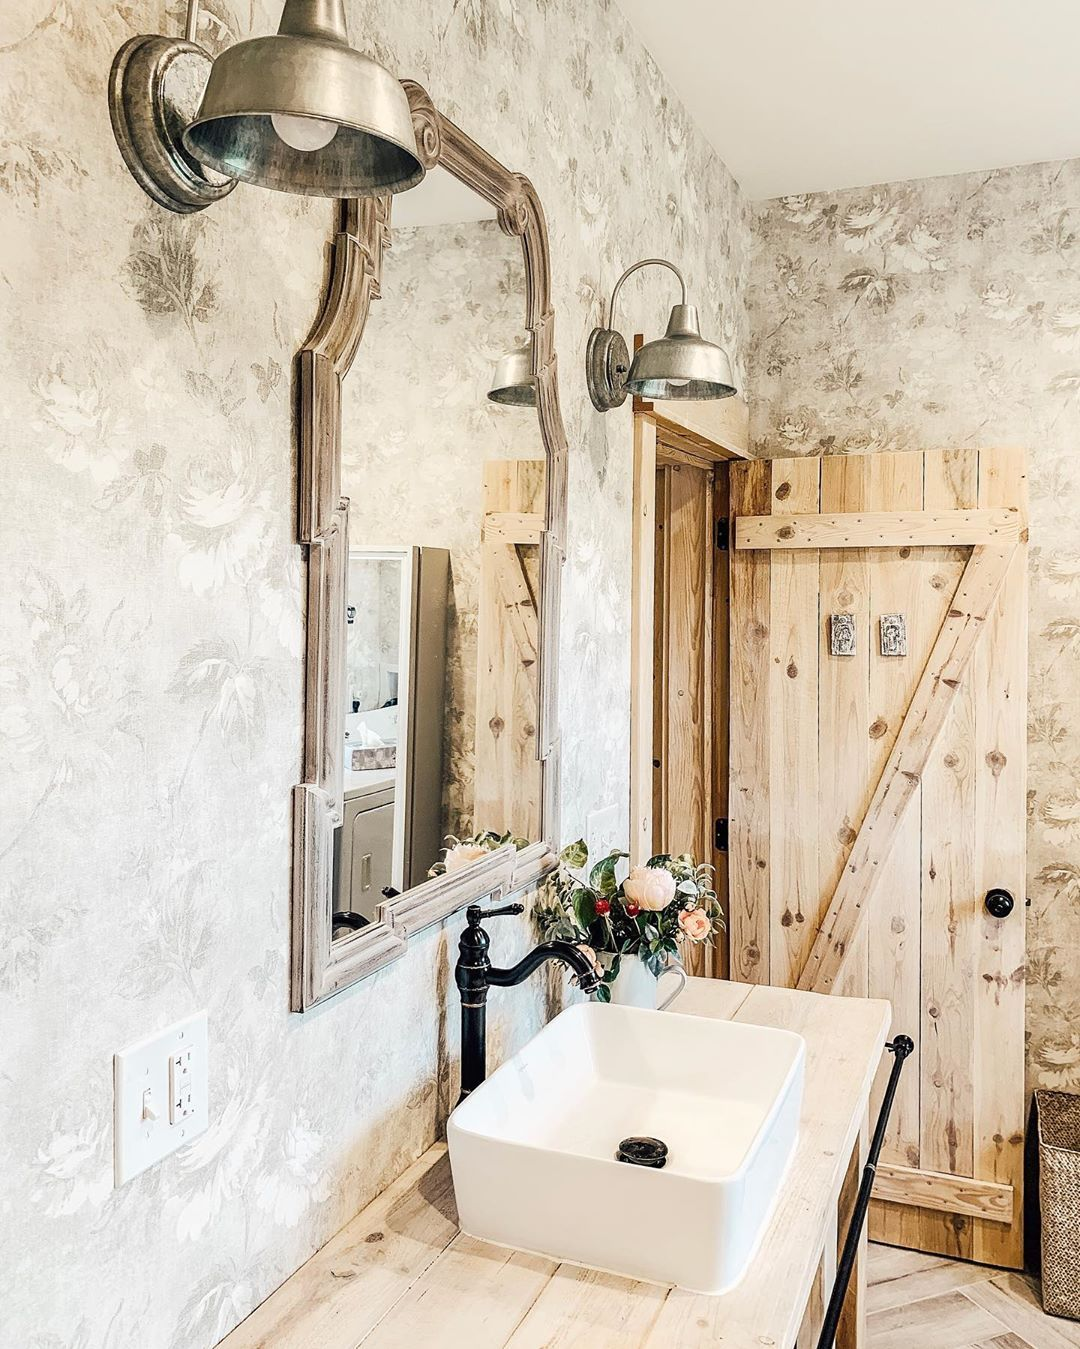 Nothing like a good old barn door to add some character to a room! 👏 @fletchercreekcottage has added a barn door for her bathroom door and it couldn't look any better there! 😍  Who knew you could some rustic charm in small doses?  #rusticfarmhouse #bathroom #bathroommakeover #barndoor   Find home decor items to create your perfect cozy corner at www.decorsteals.com